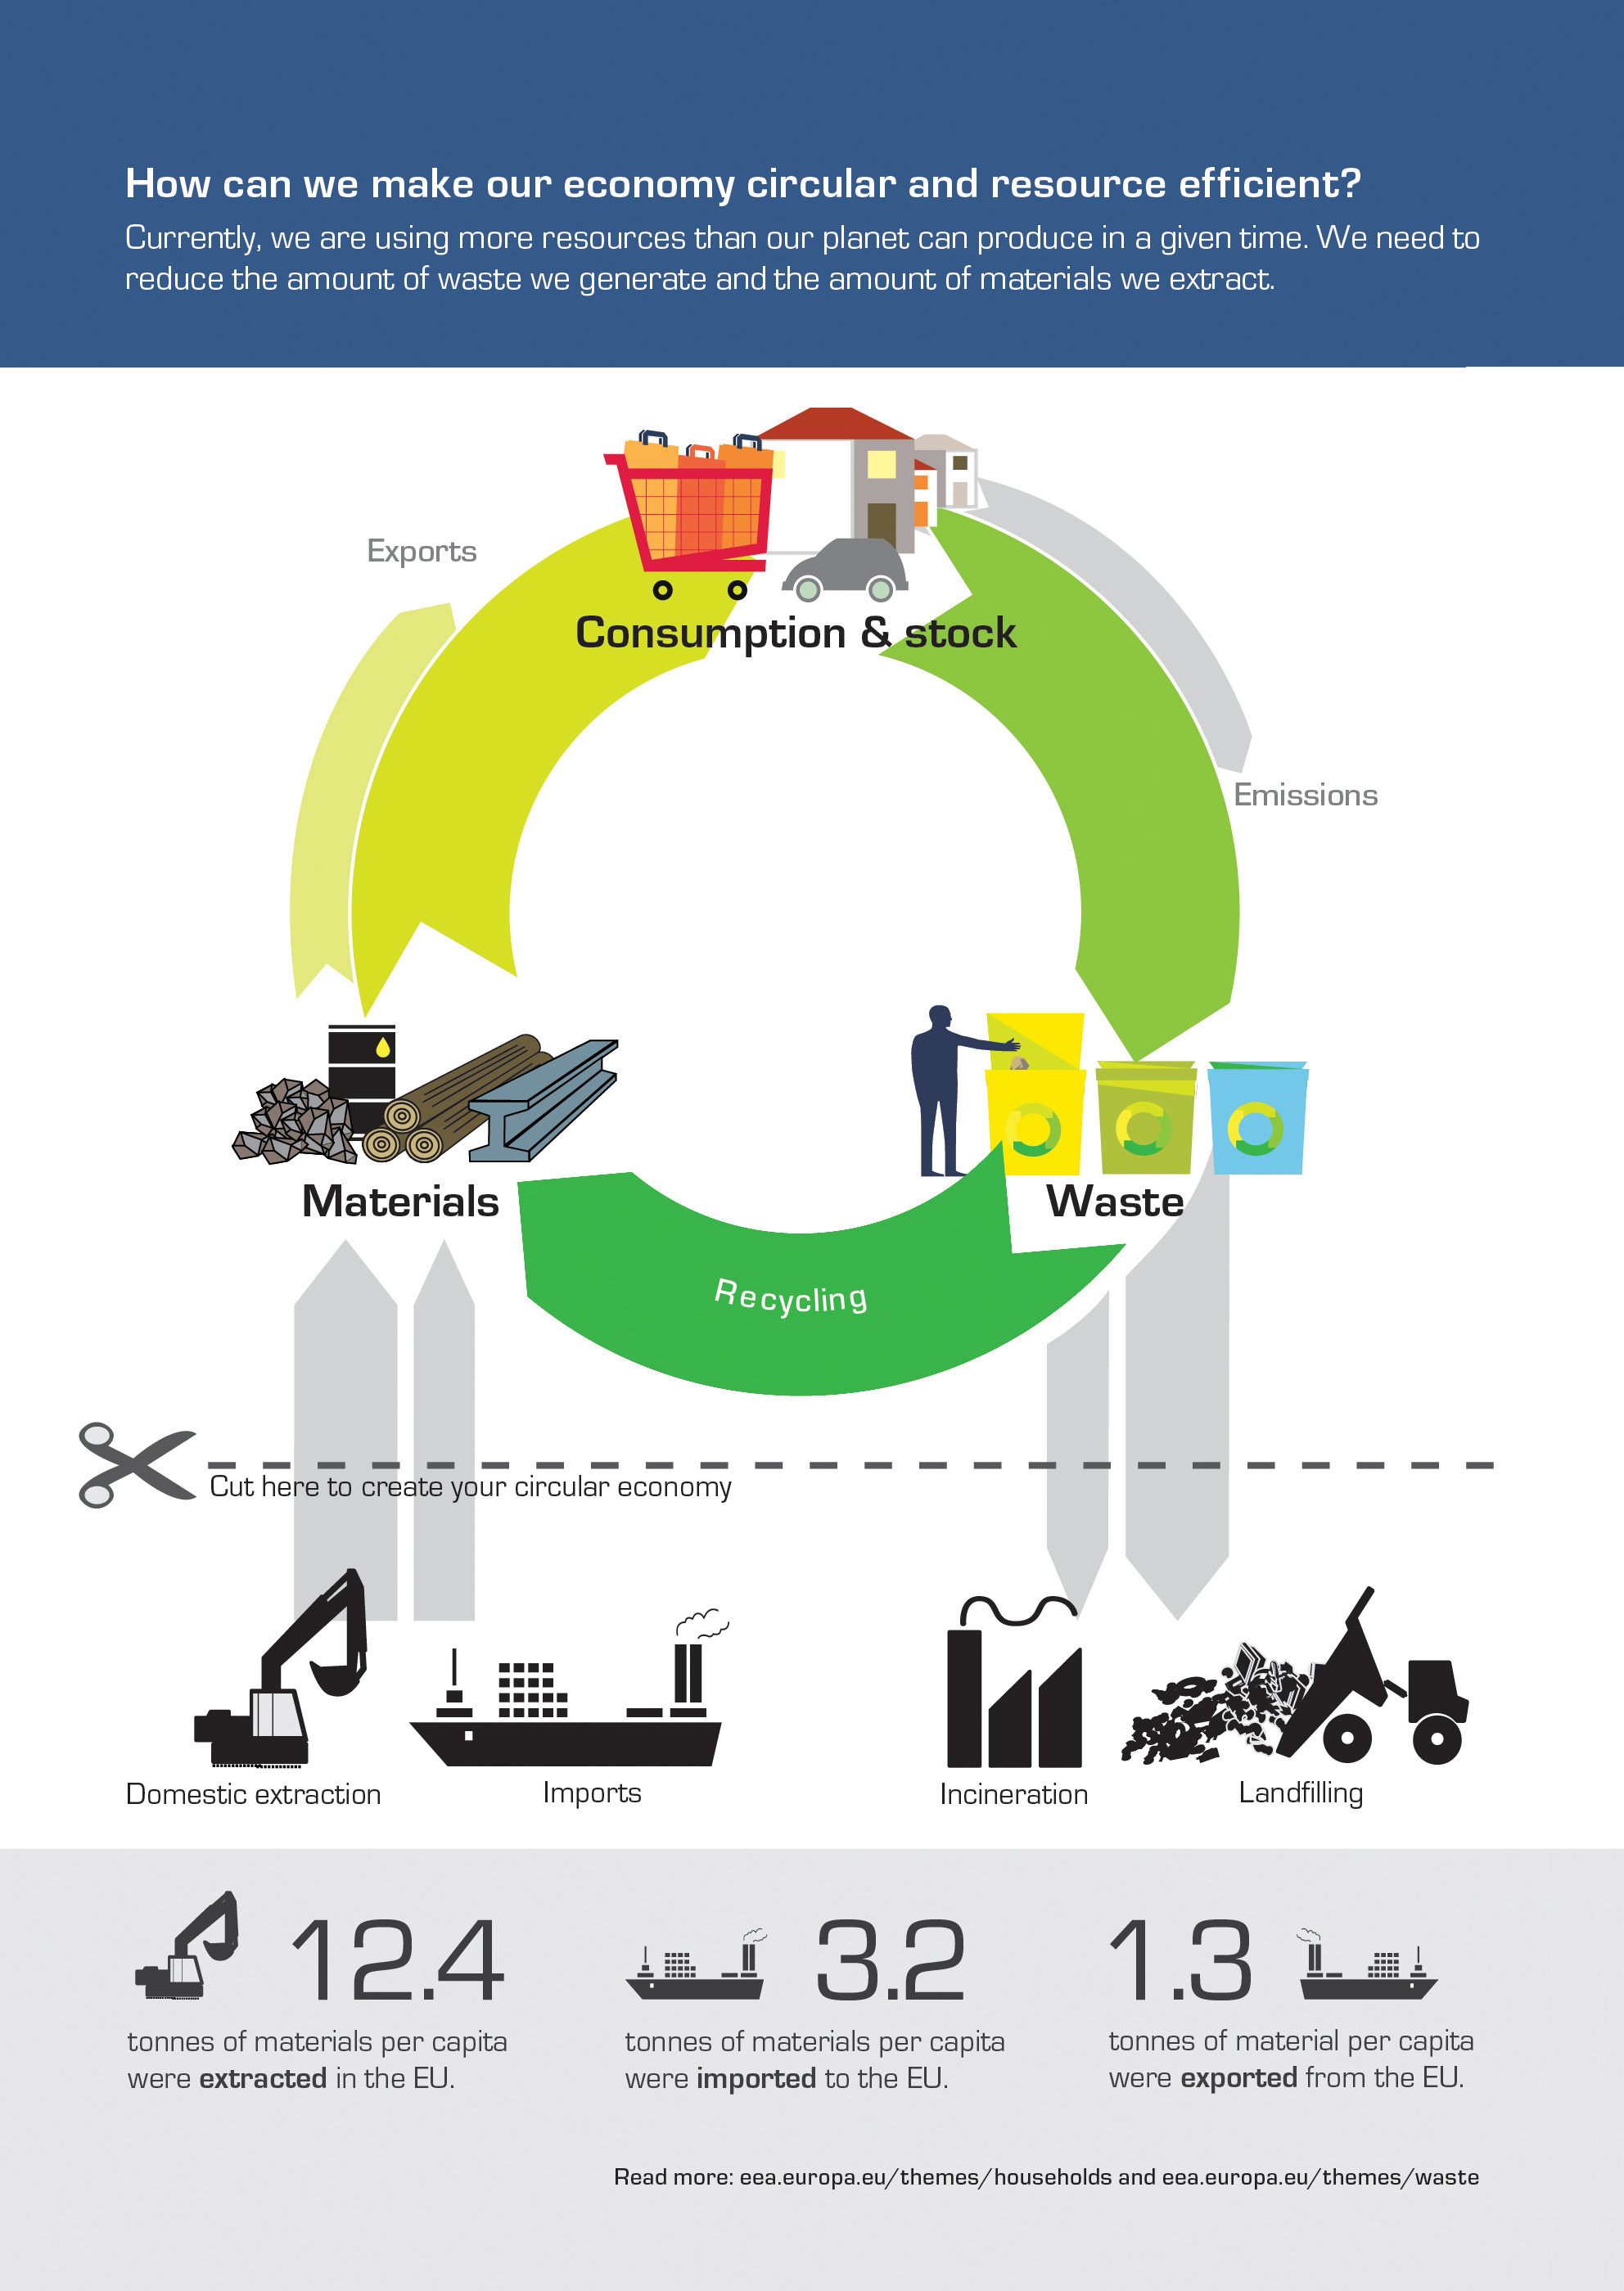 How can we make our economy circular and resource efficient?